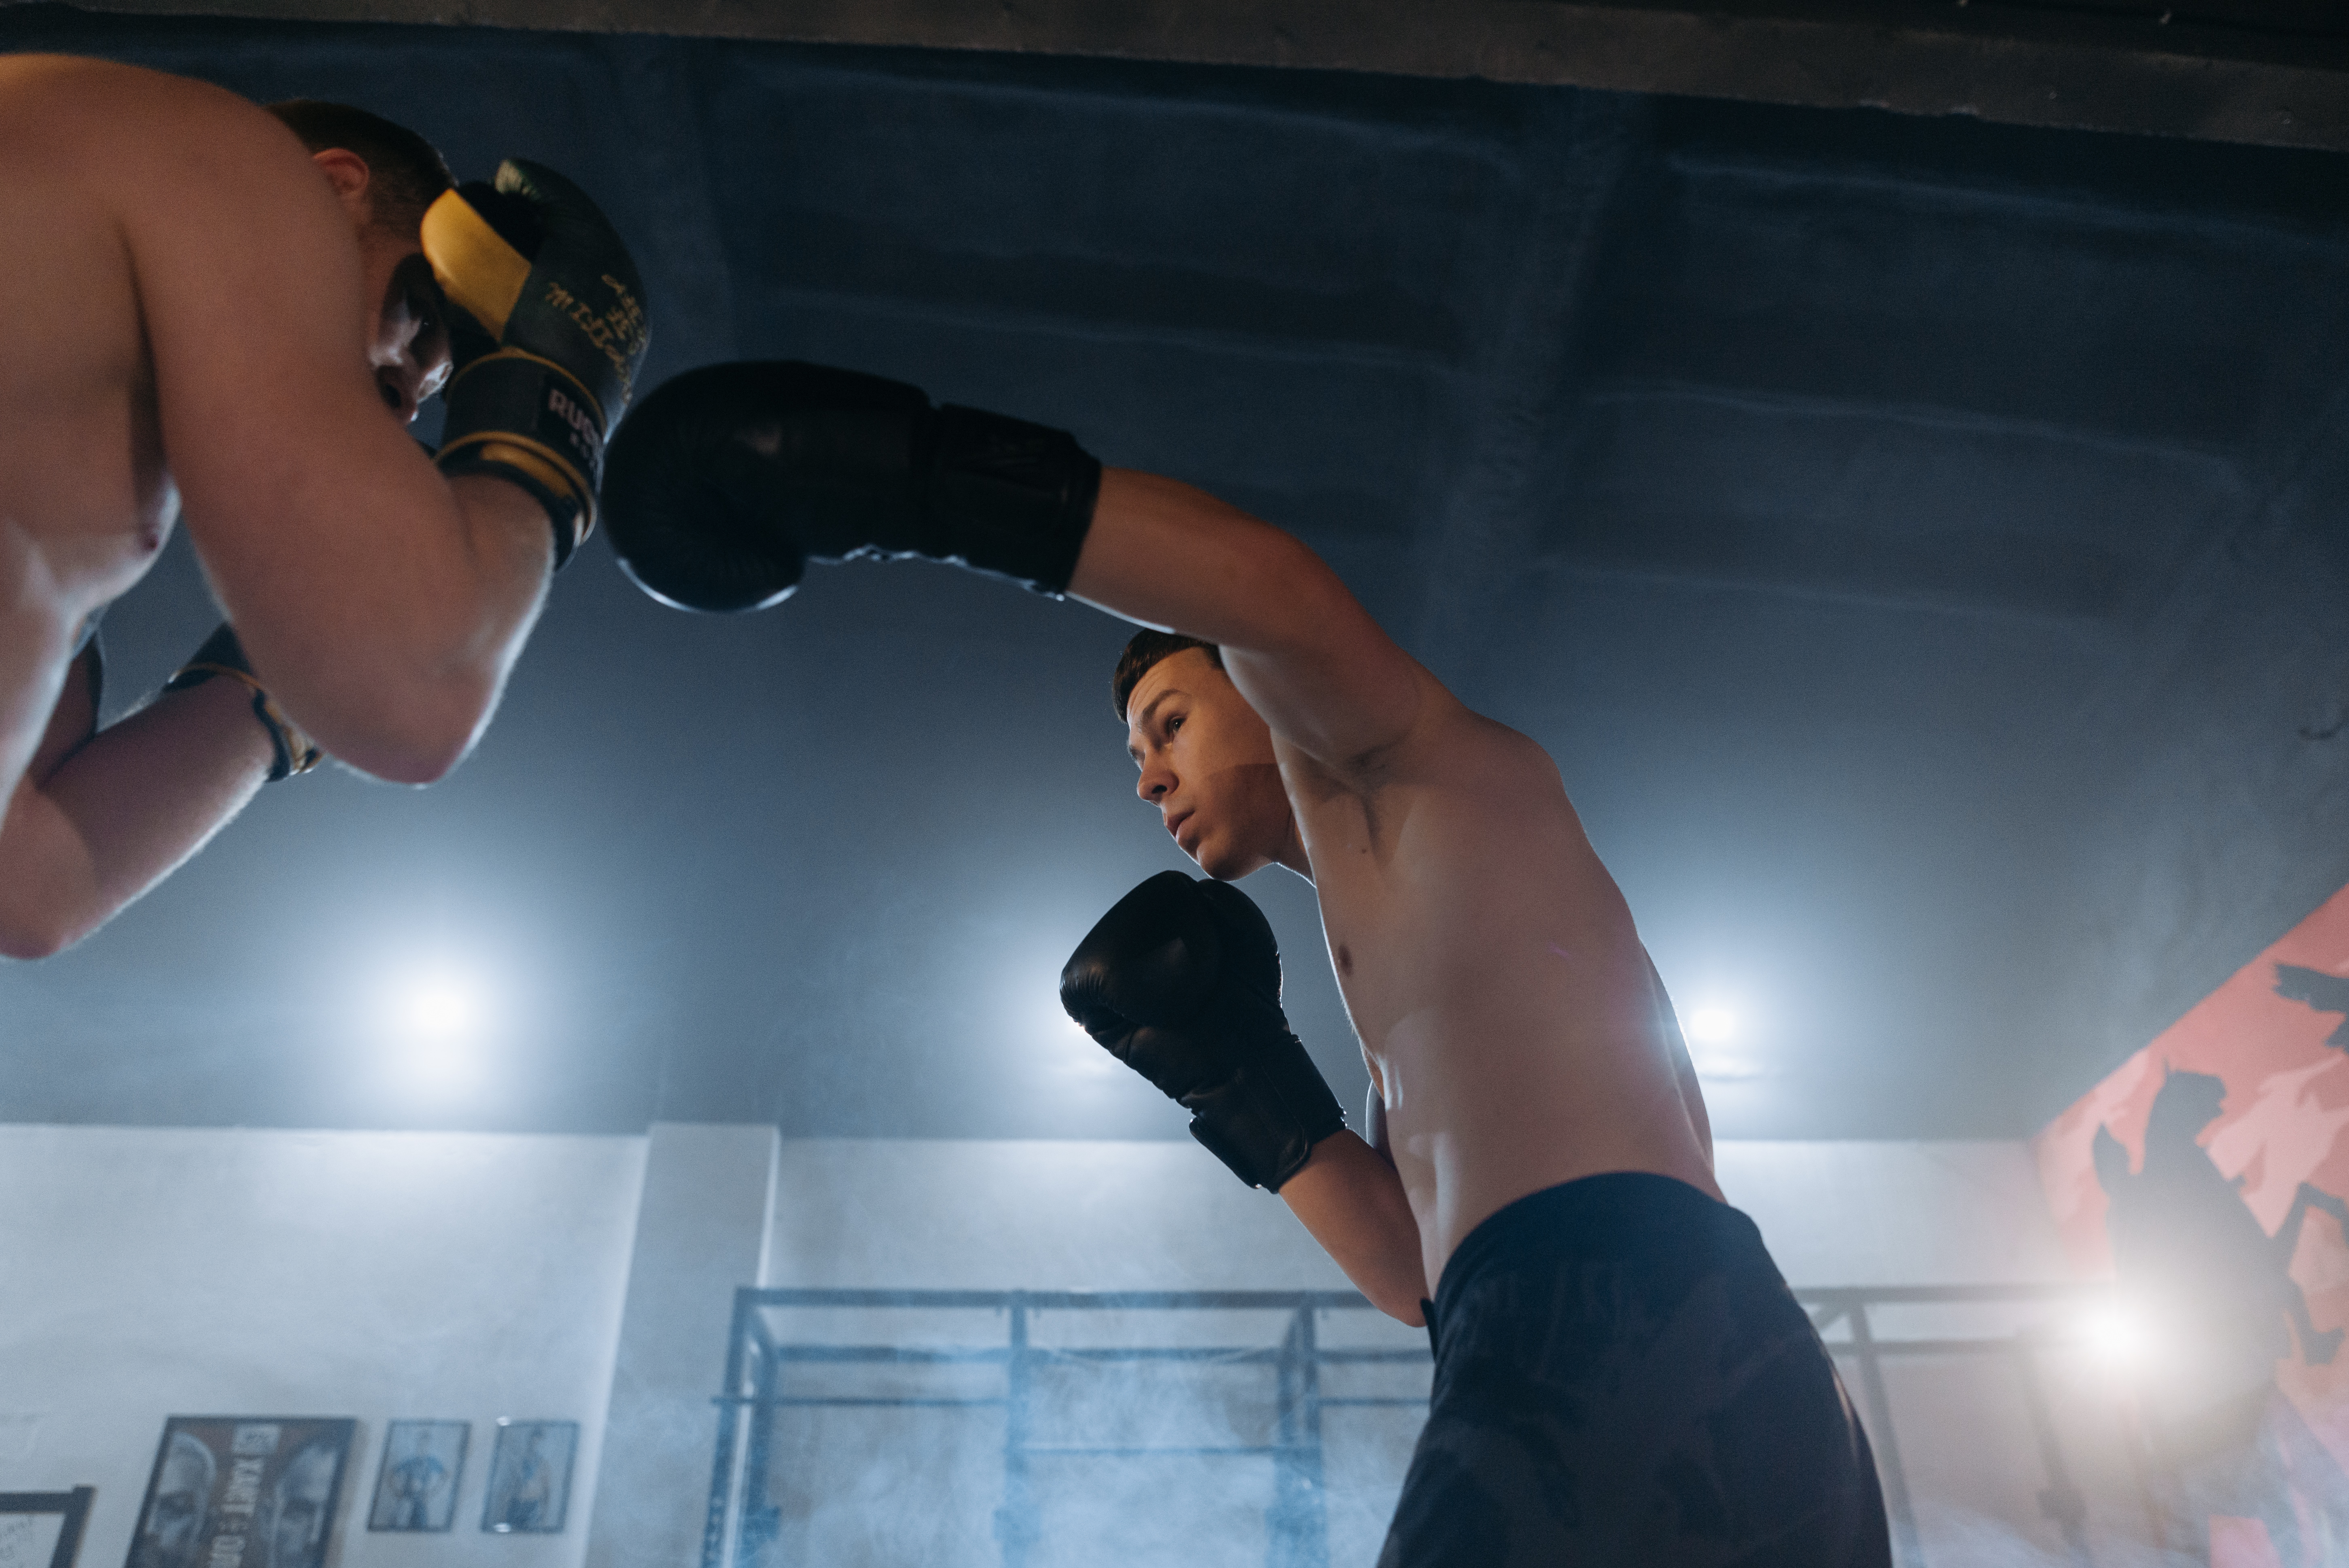 Two men boxing with each other